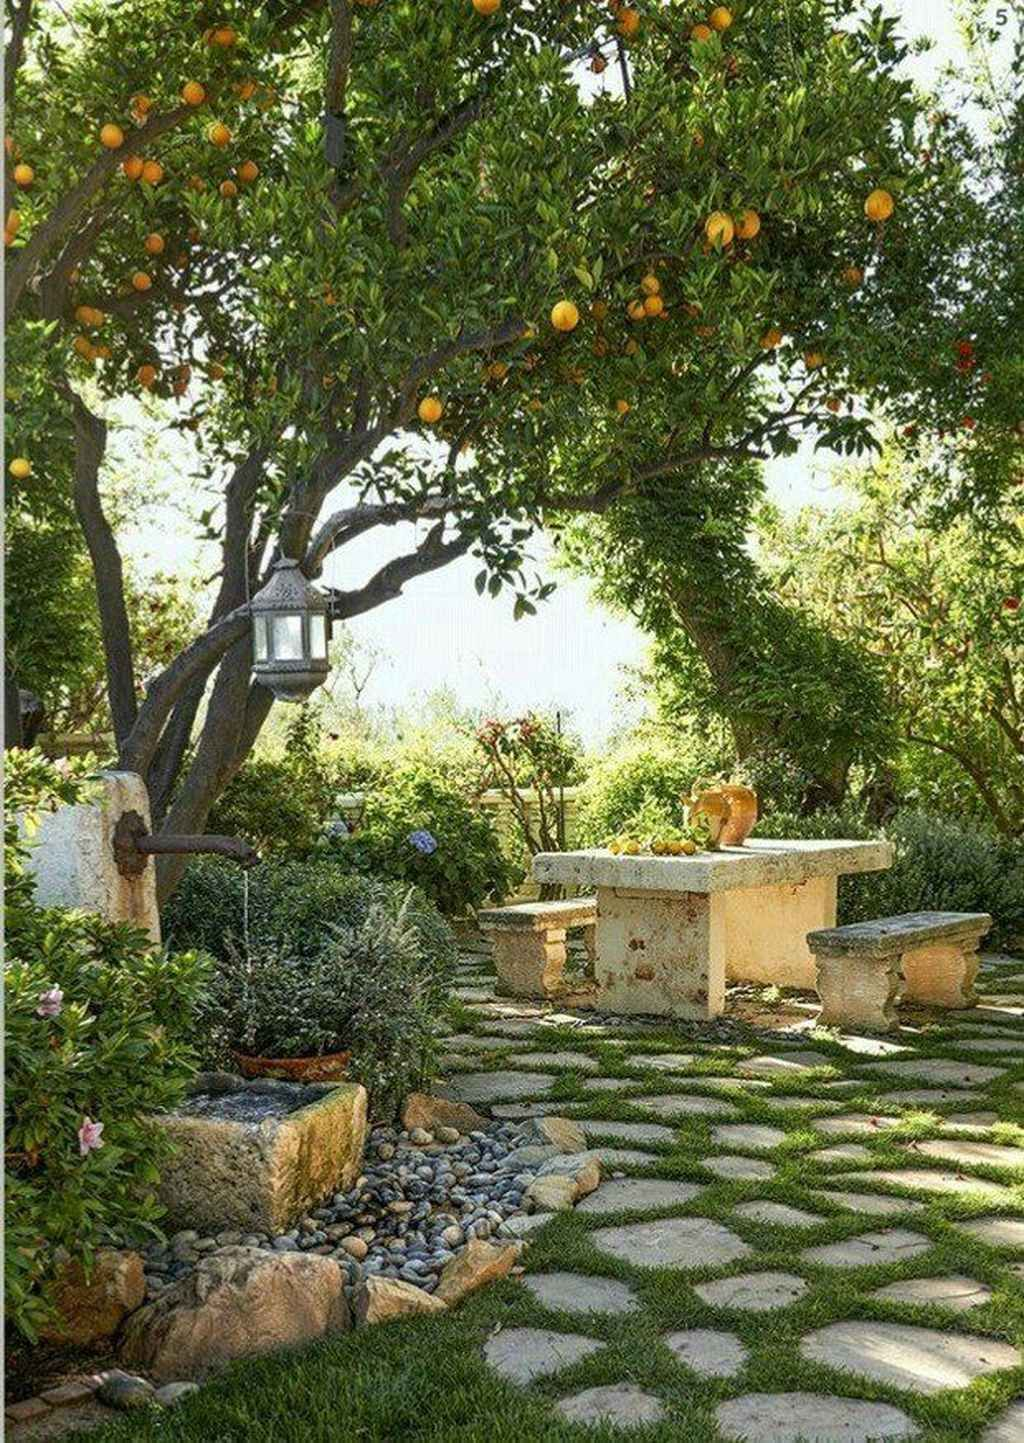 95 Small Courtyard Garden with Seating Area Design Ideas #smallcourtyardgardens